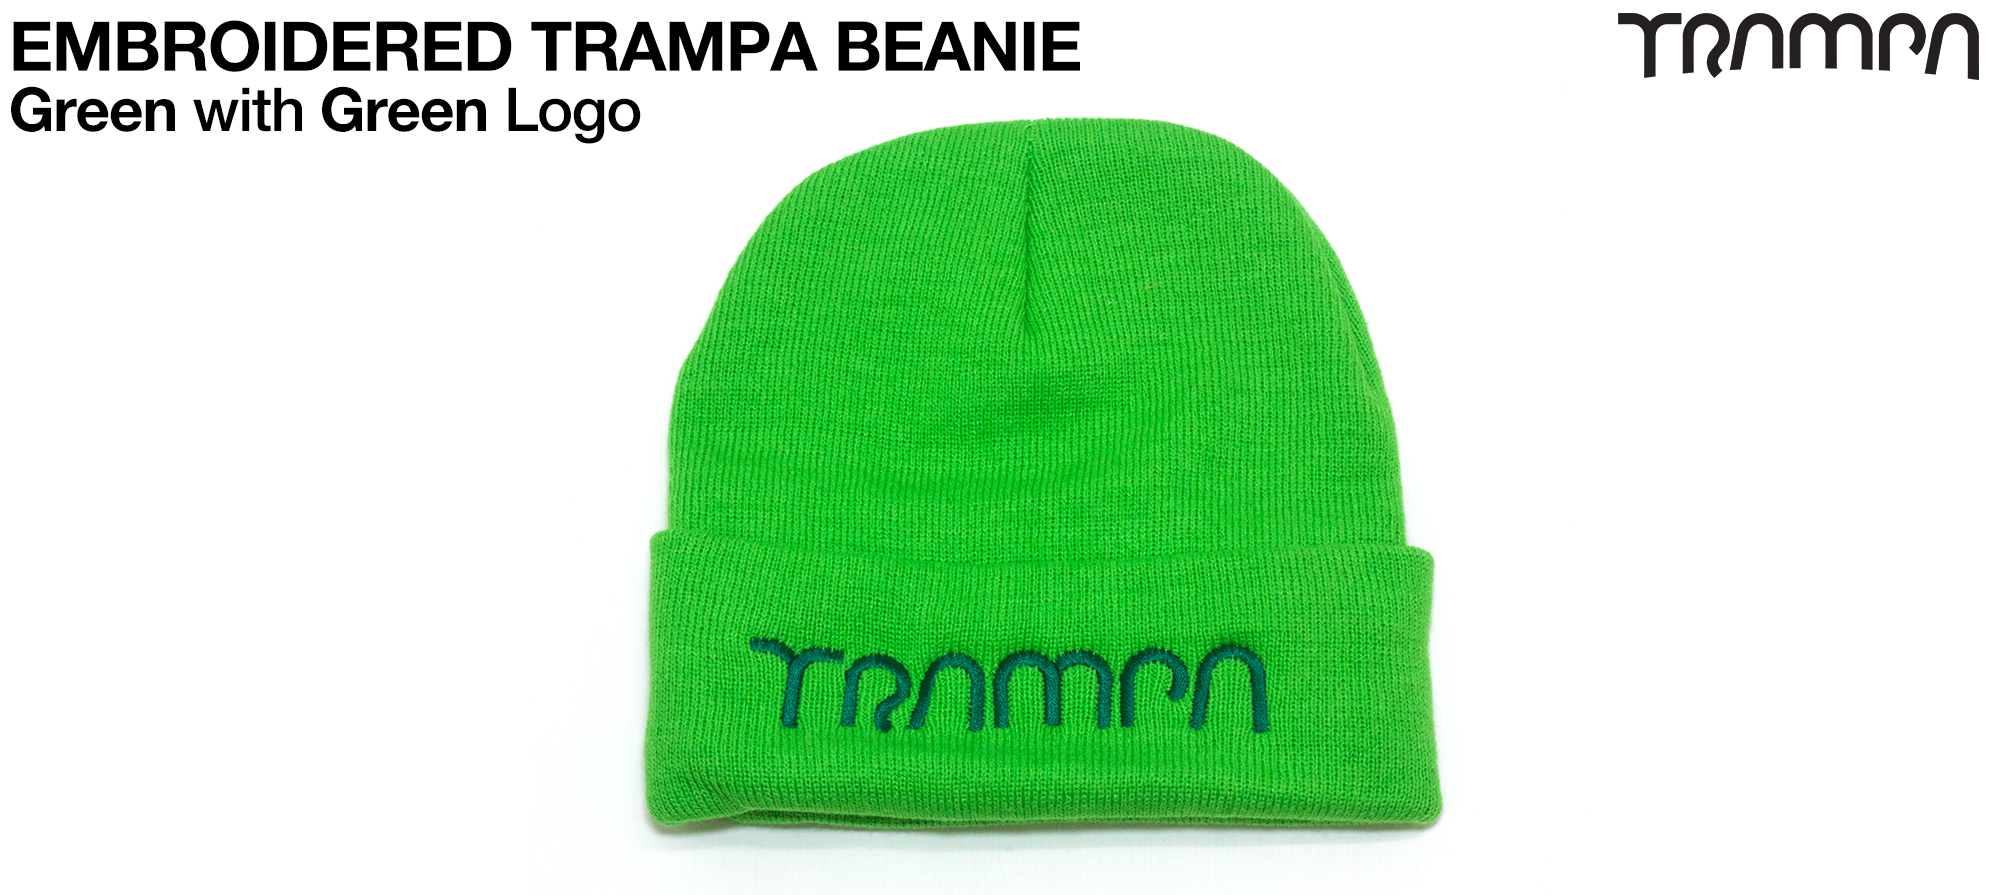 GREEN Woolie hat with GREEN TRAMPA logo